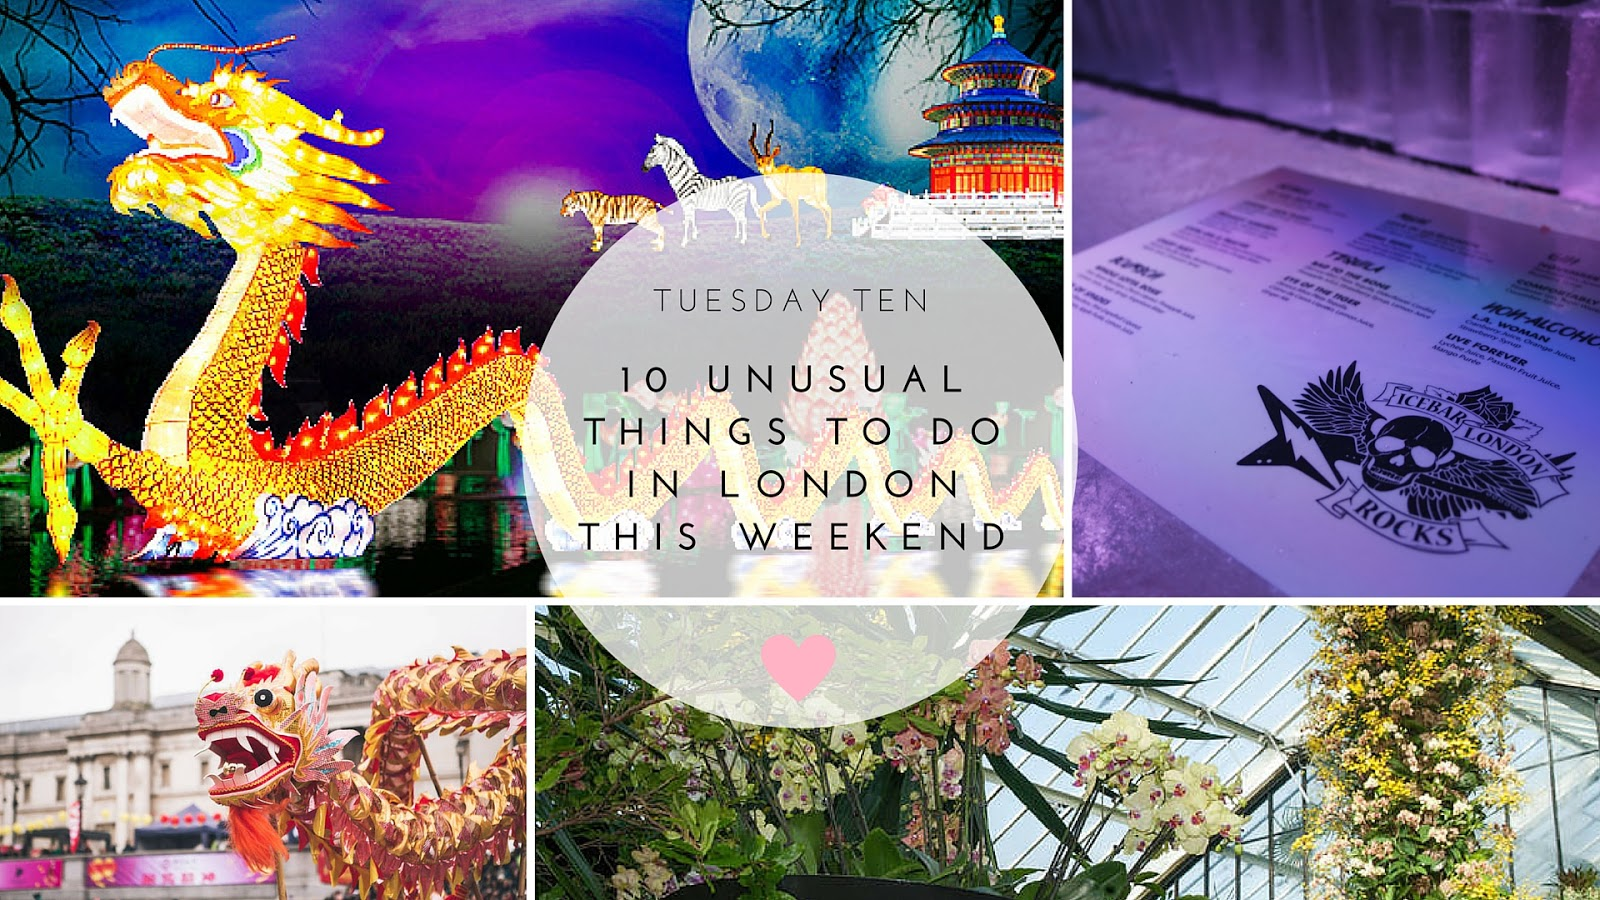 10 Unusual Things To Do In London This Weekend